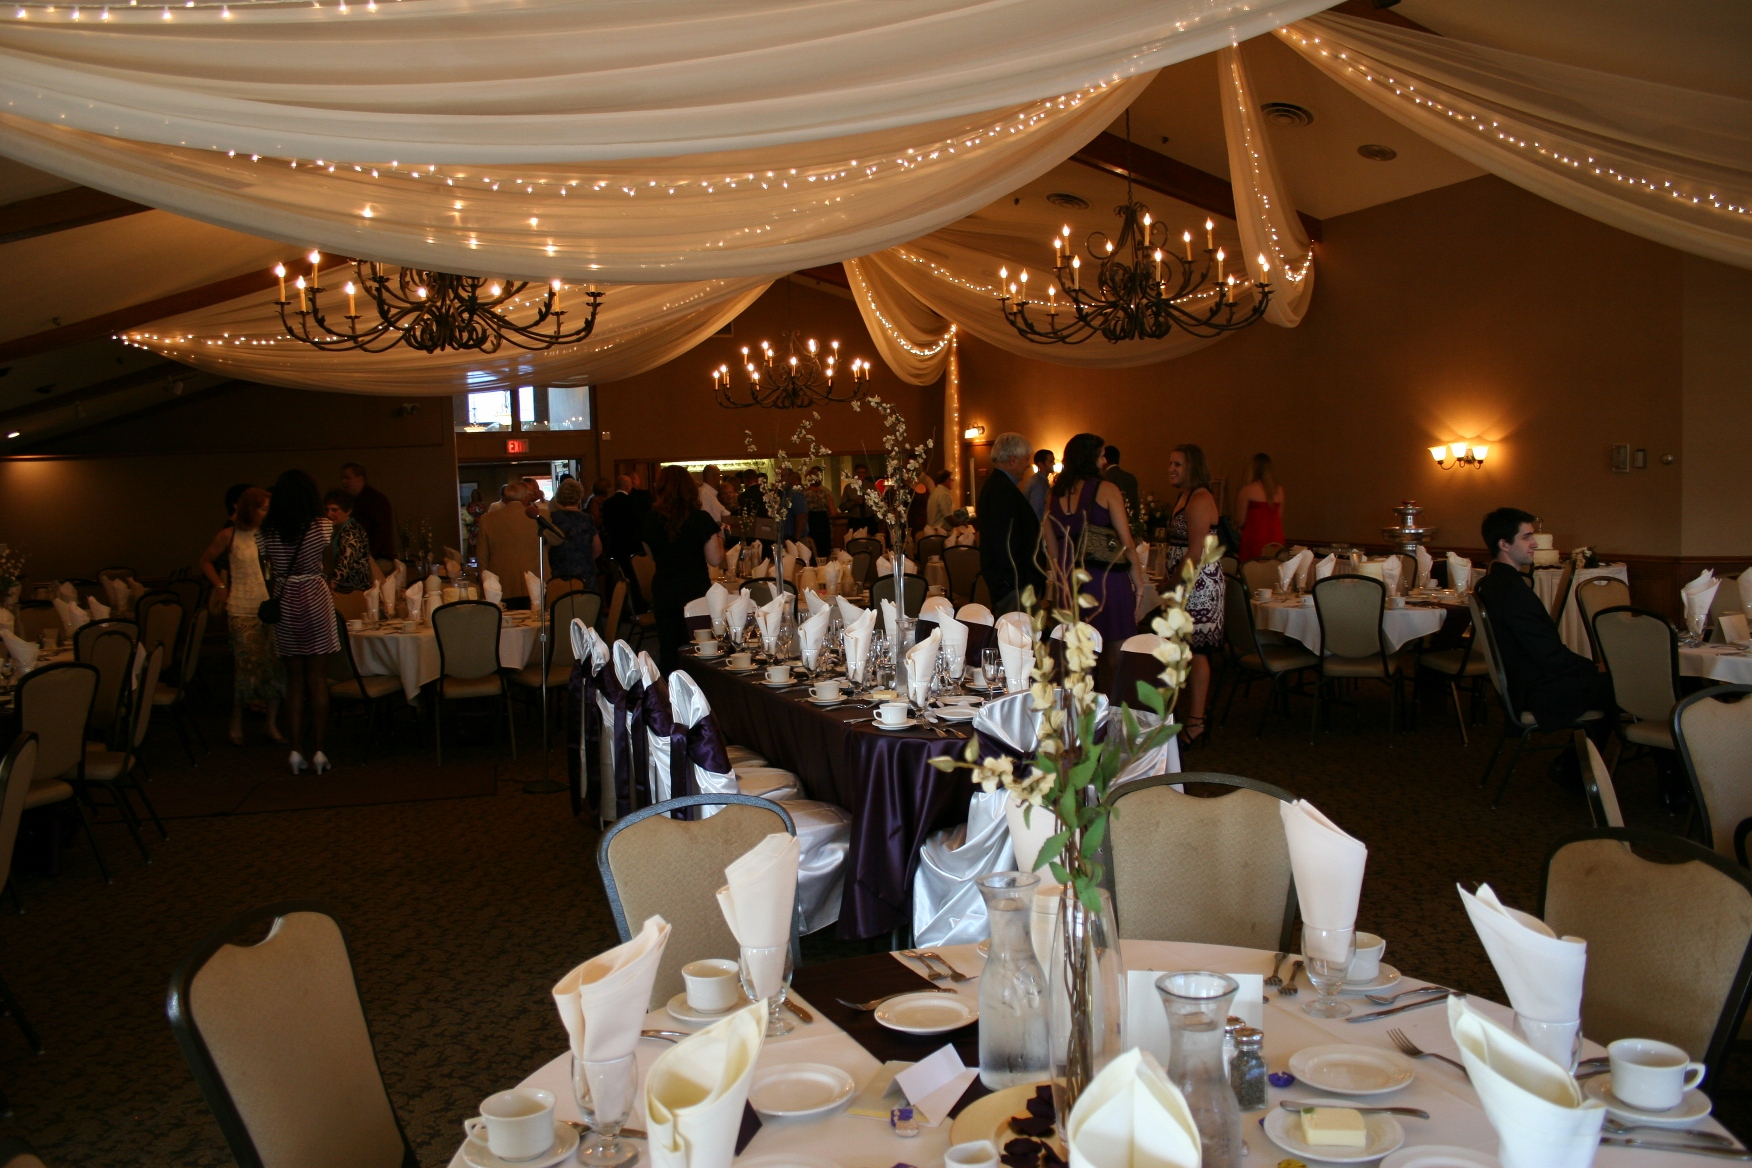 Rent A Wedding Reception Hall : Lindsey and brent s reception was held in an elegant banquet room at